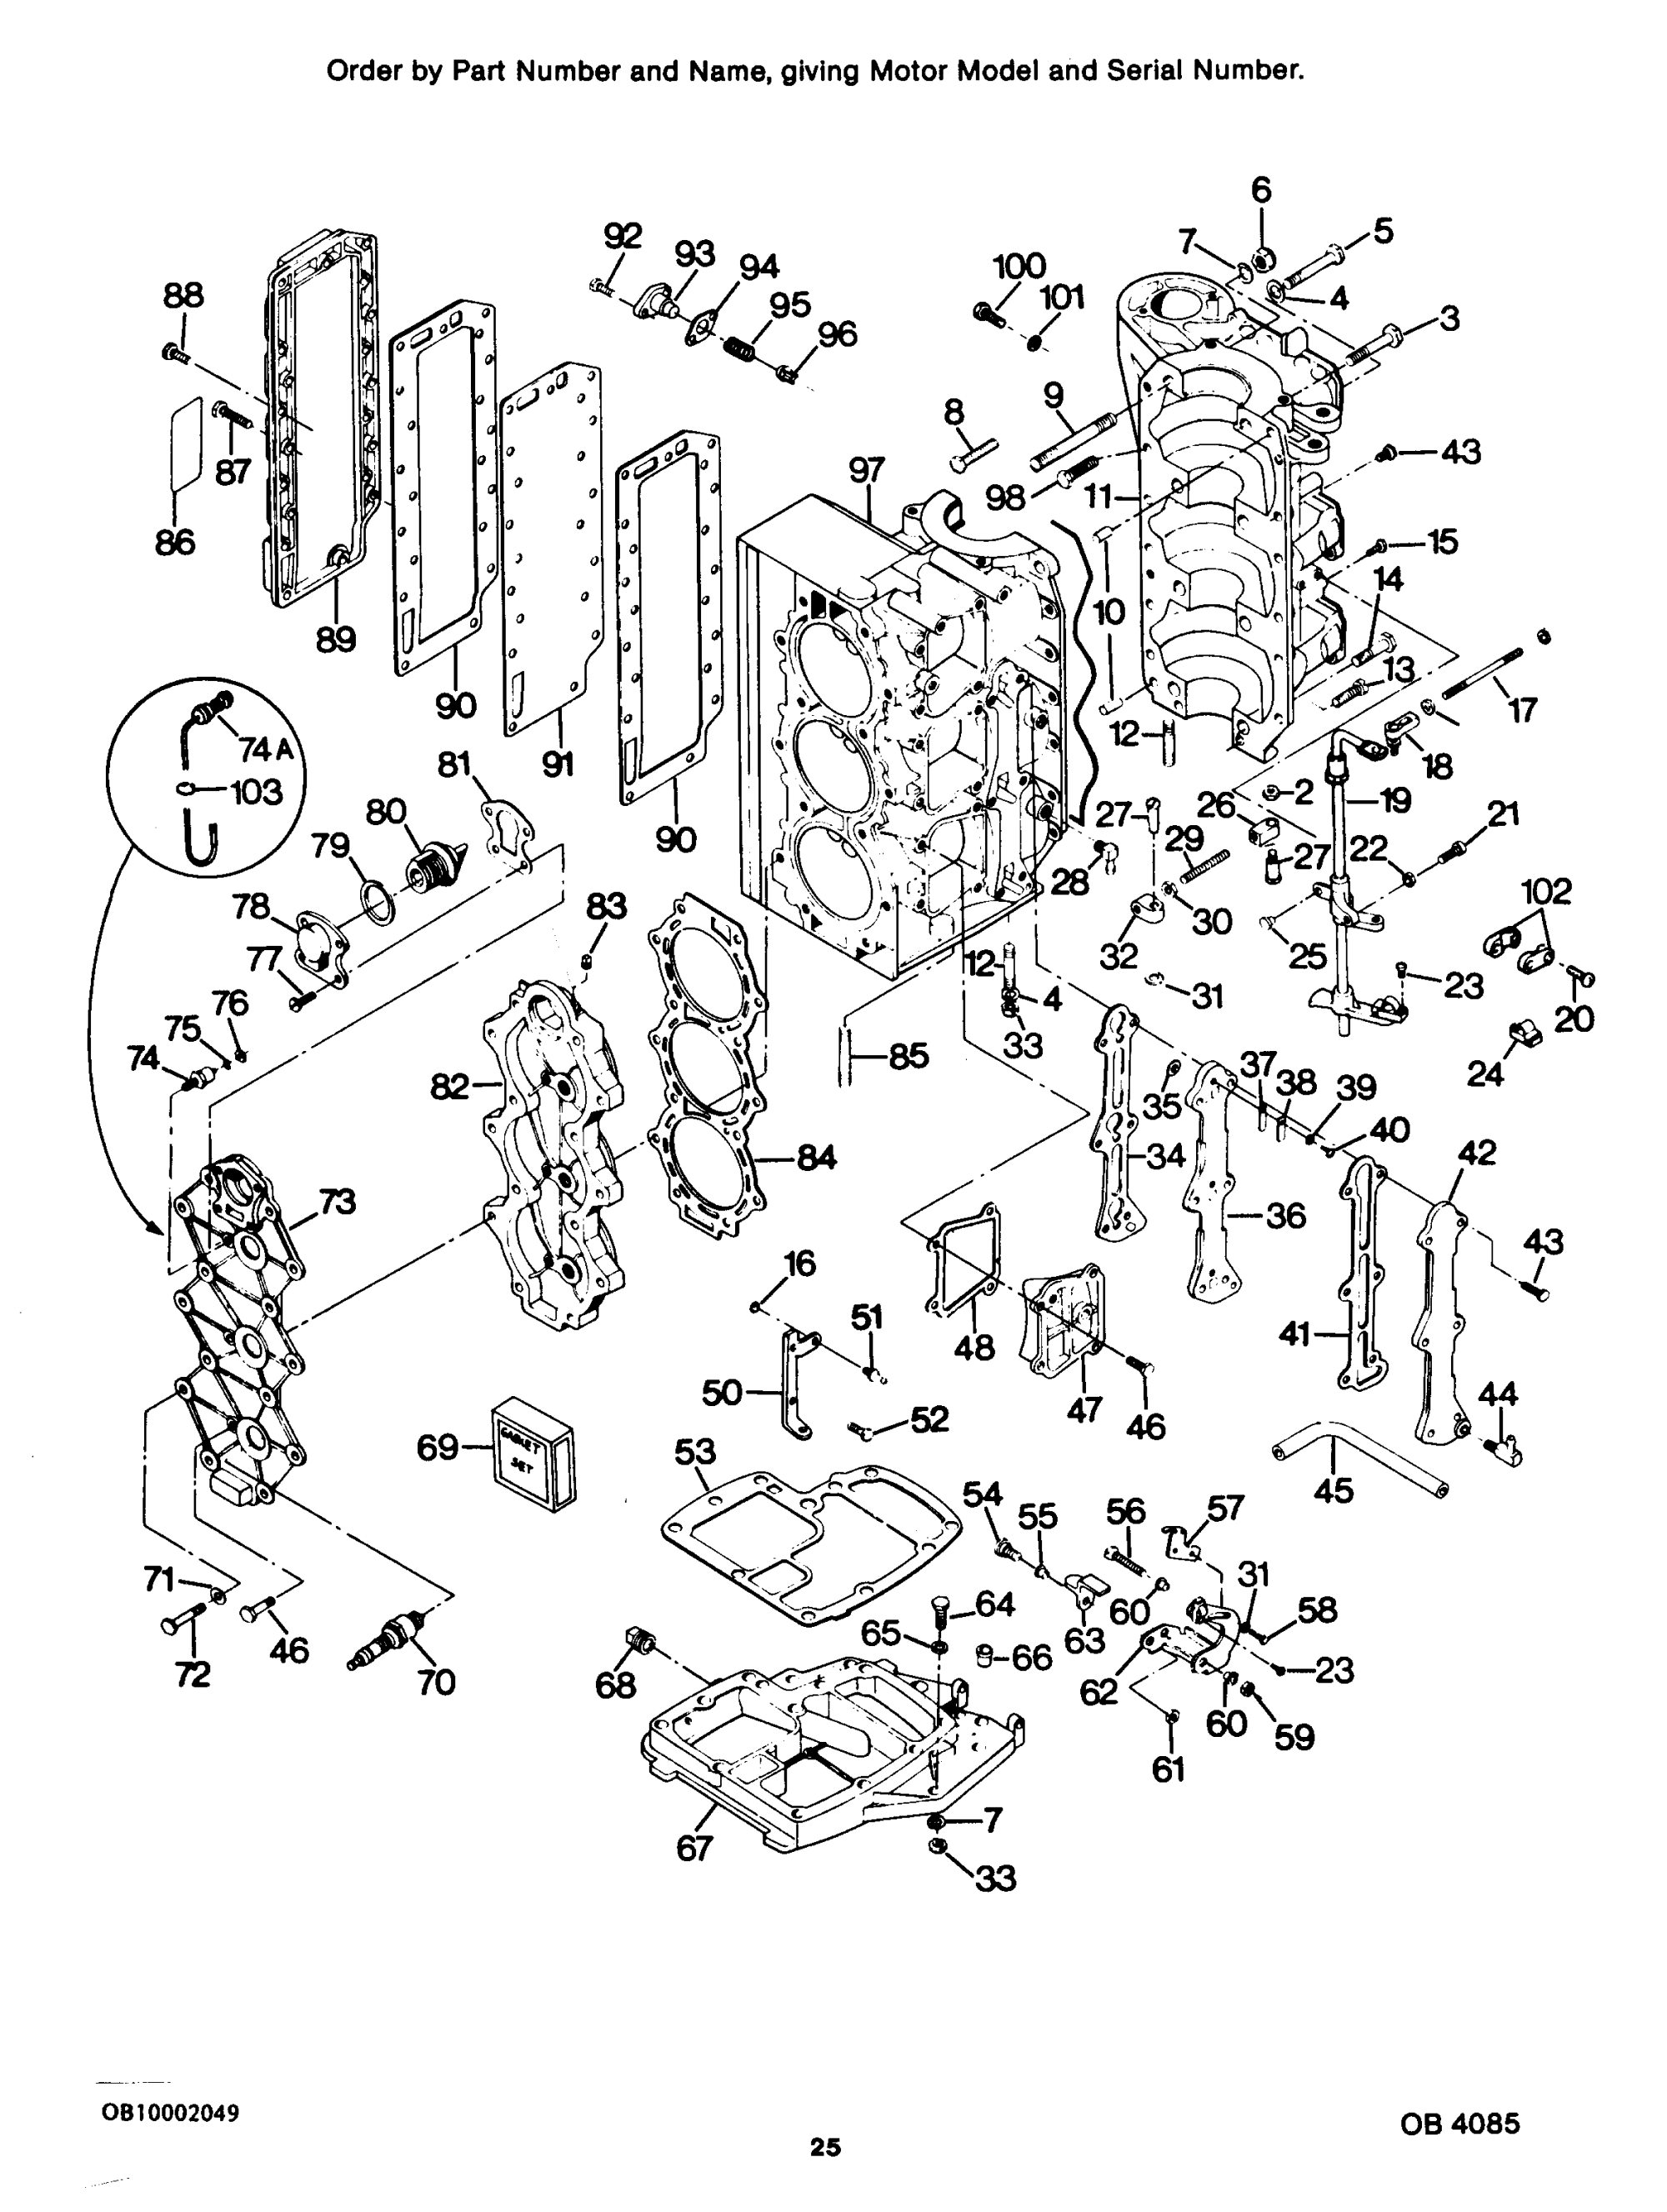 hight resolution of diagram of 85 hp 1986 force outboard 856x6l powerhead diagram and mercury force 85 h p